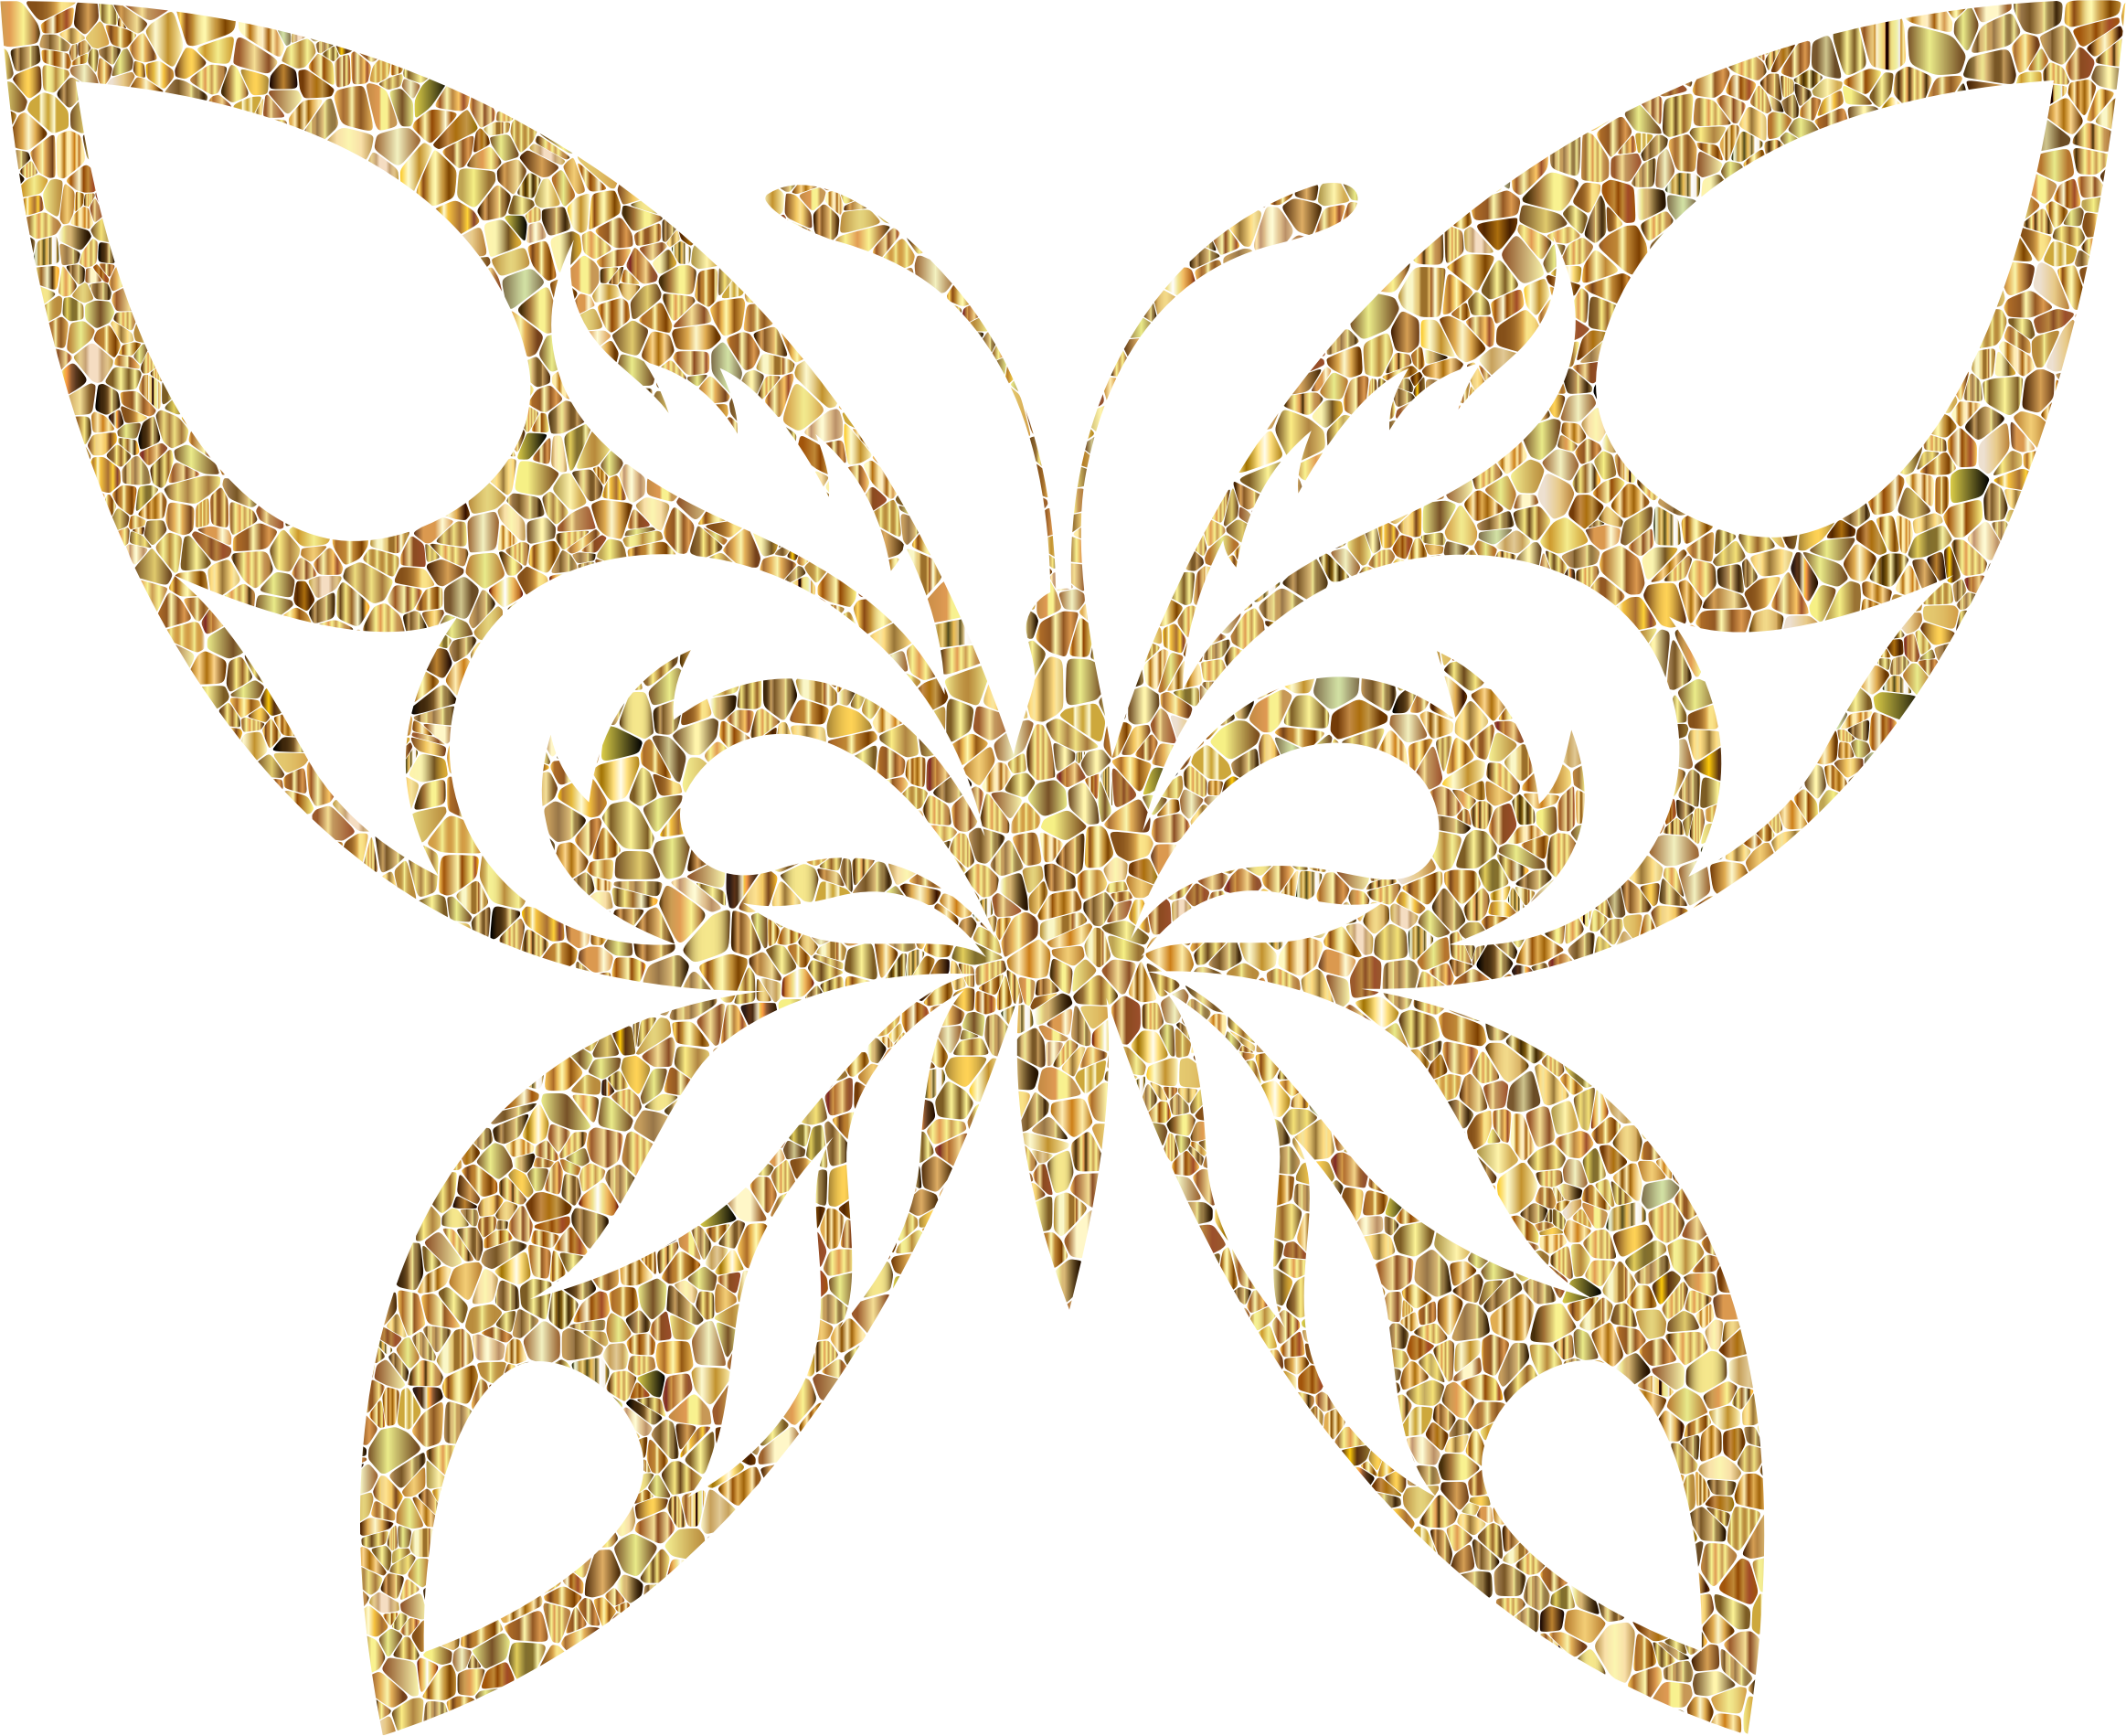 Gold clipart abundance. Collection of free golde